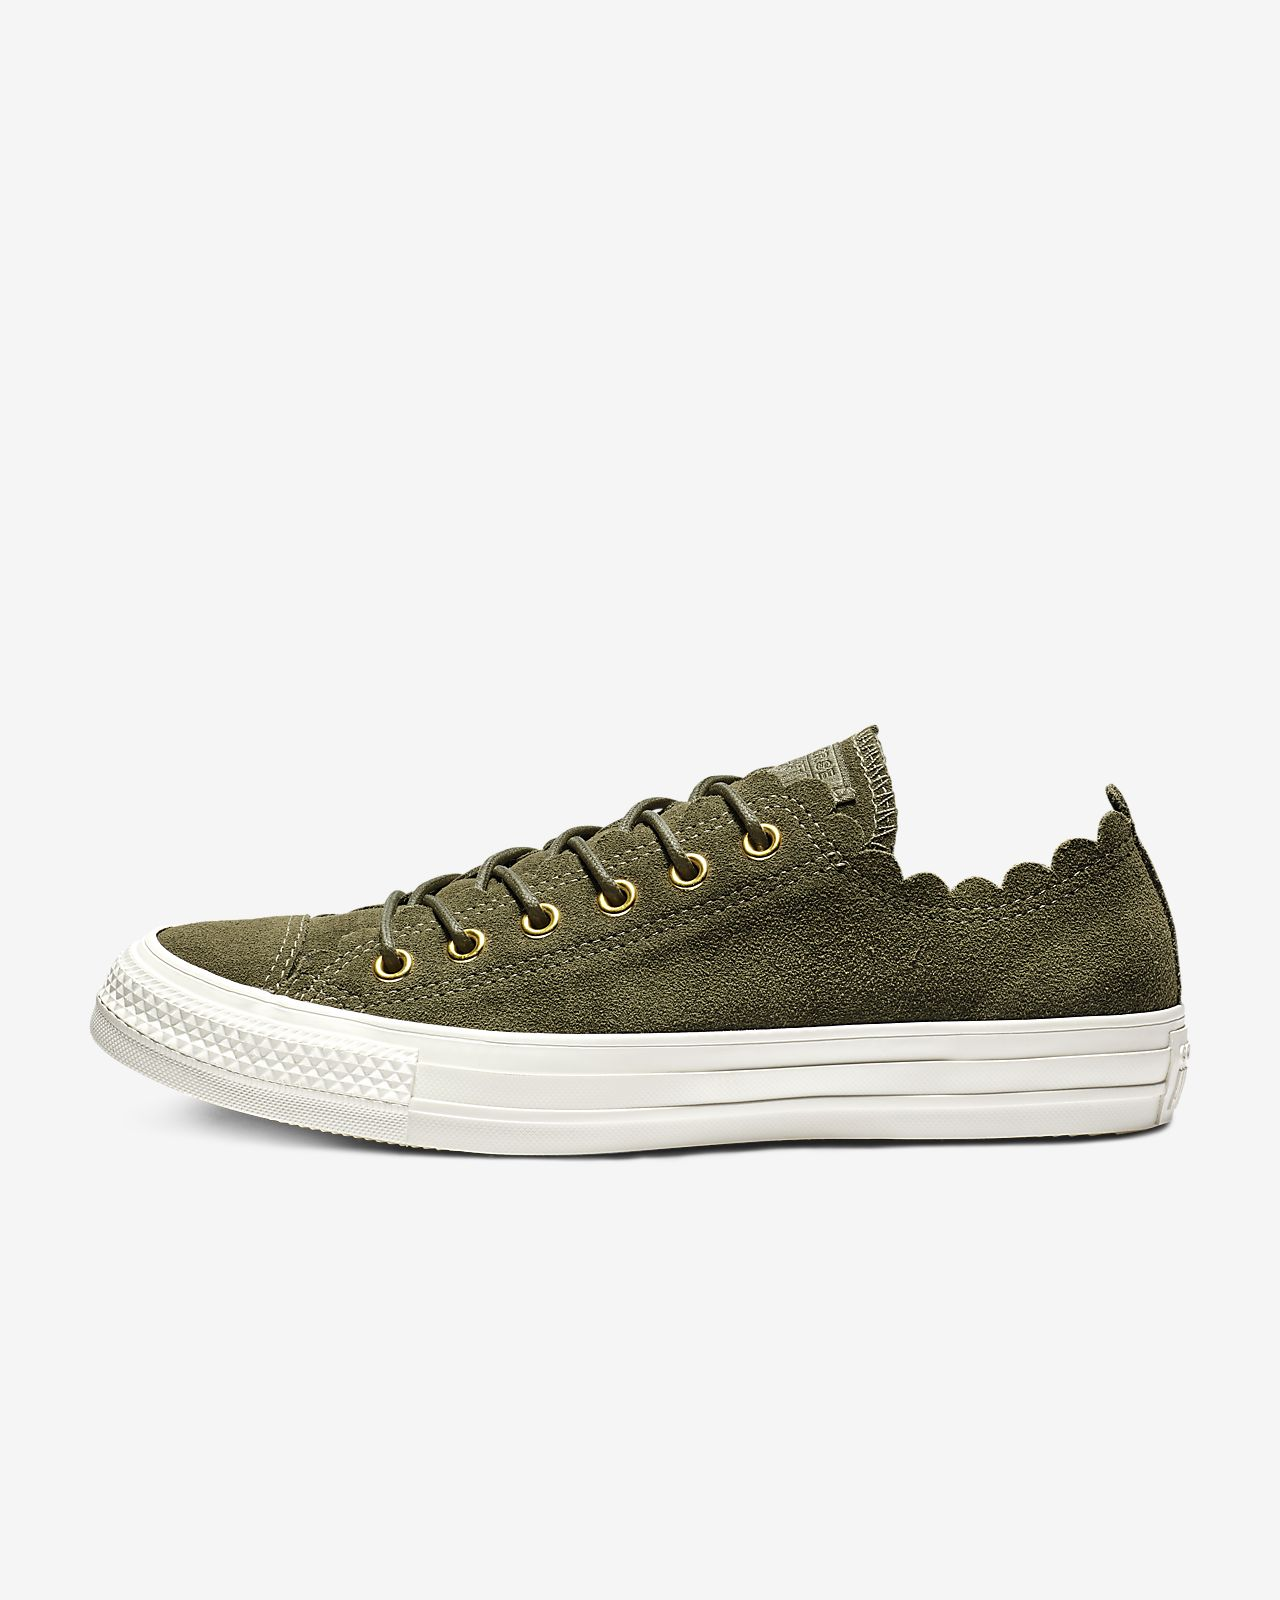 Chuck Taylor All Star Frilly Thrills Low Top Womens Shoe